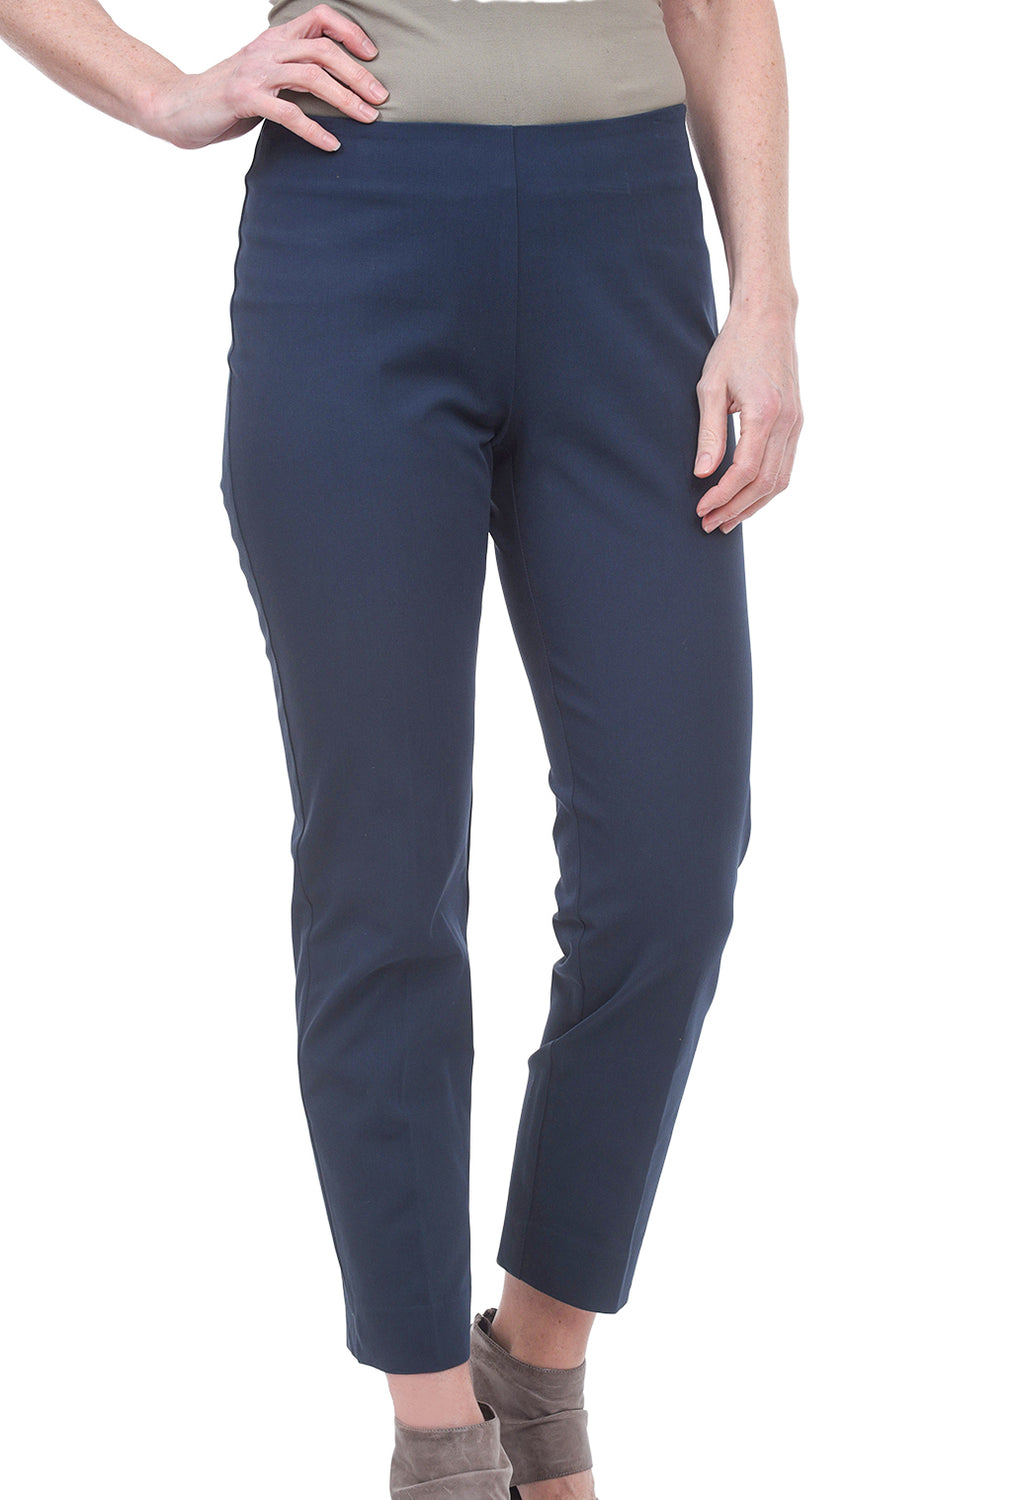 Estelle & Finn Side Zip Ankle Pants, Steel Blue